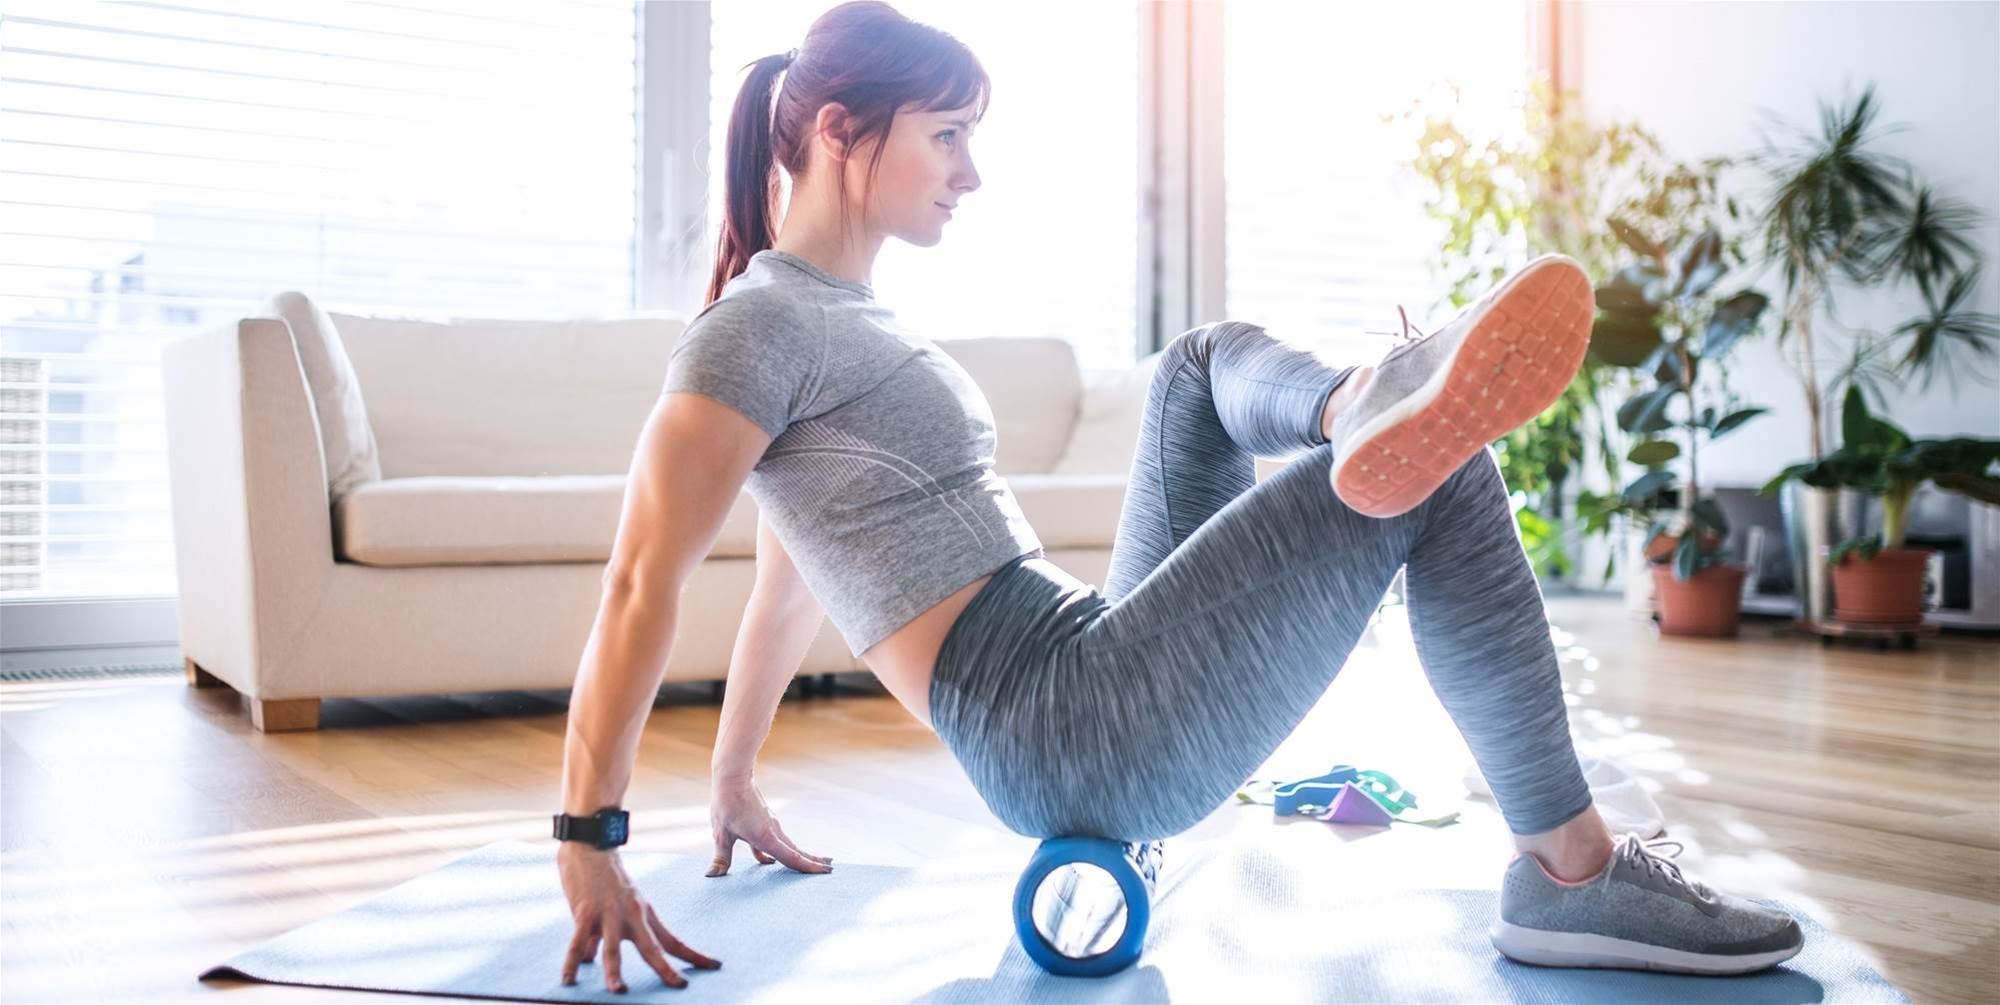 5 Foam Roller Exercises to Ease All of Your Aches and Pains